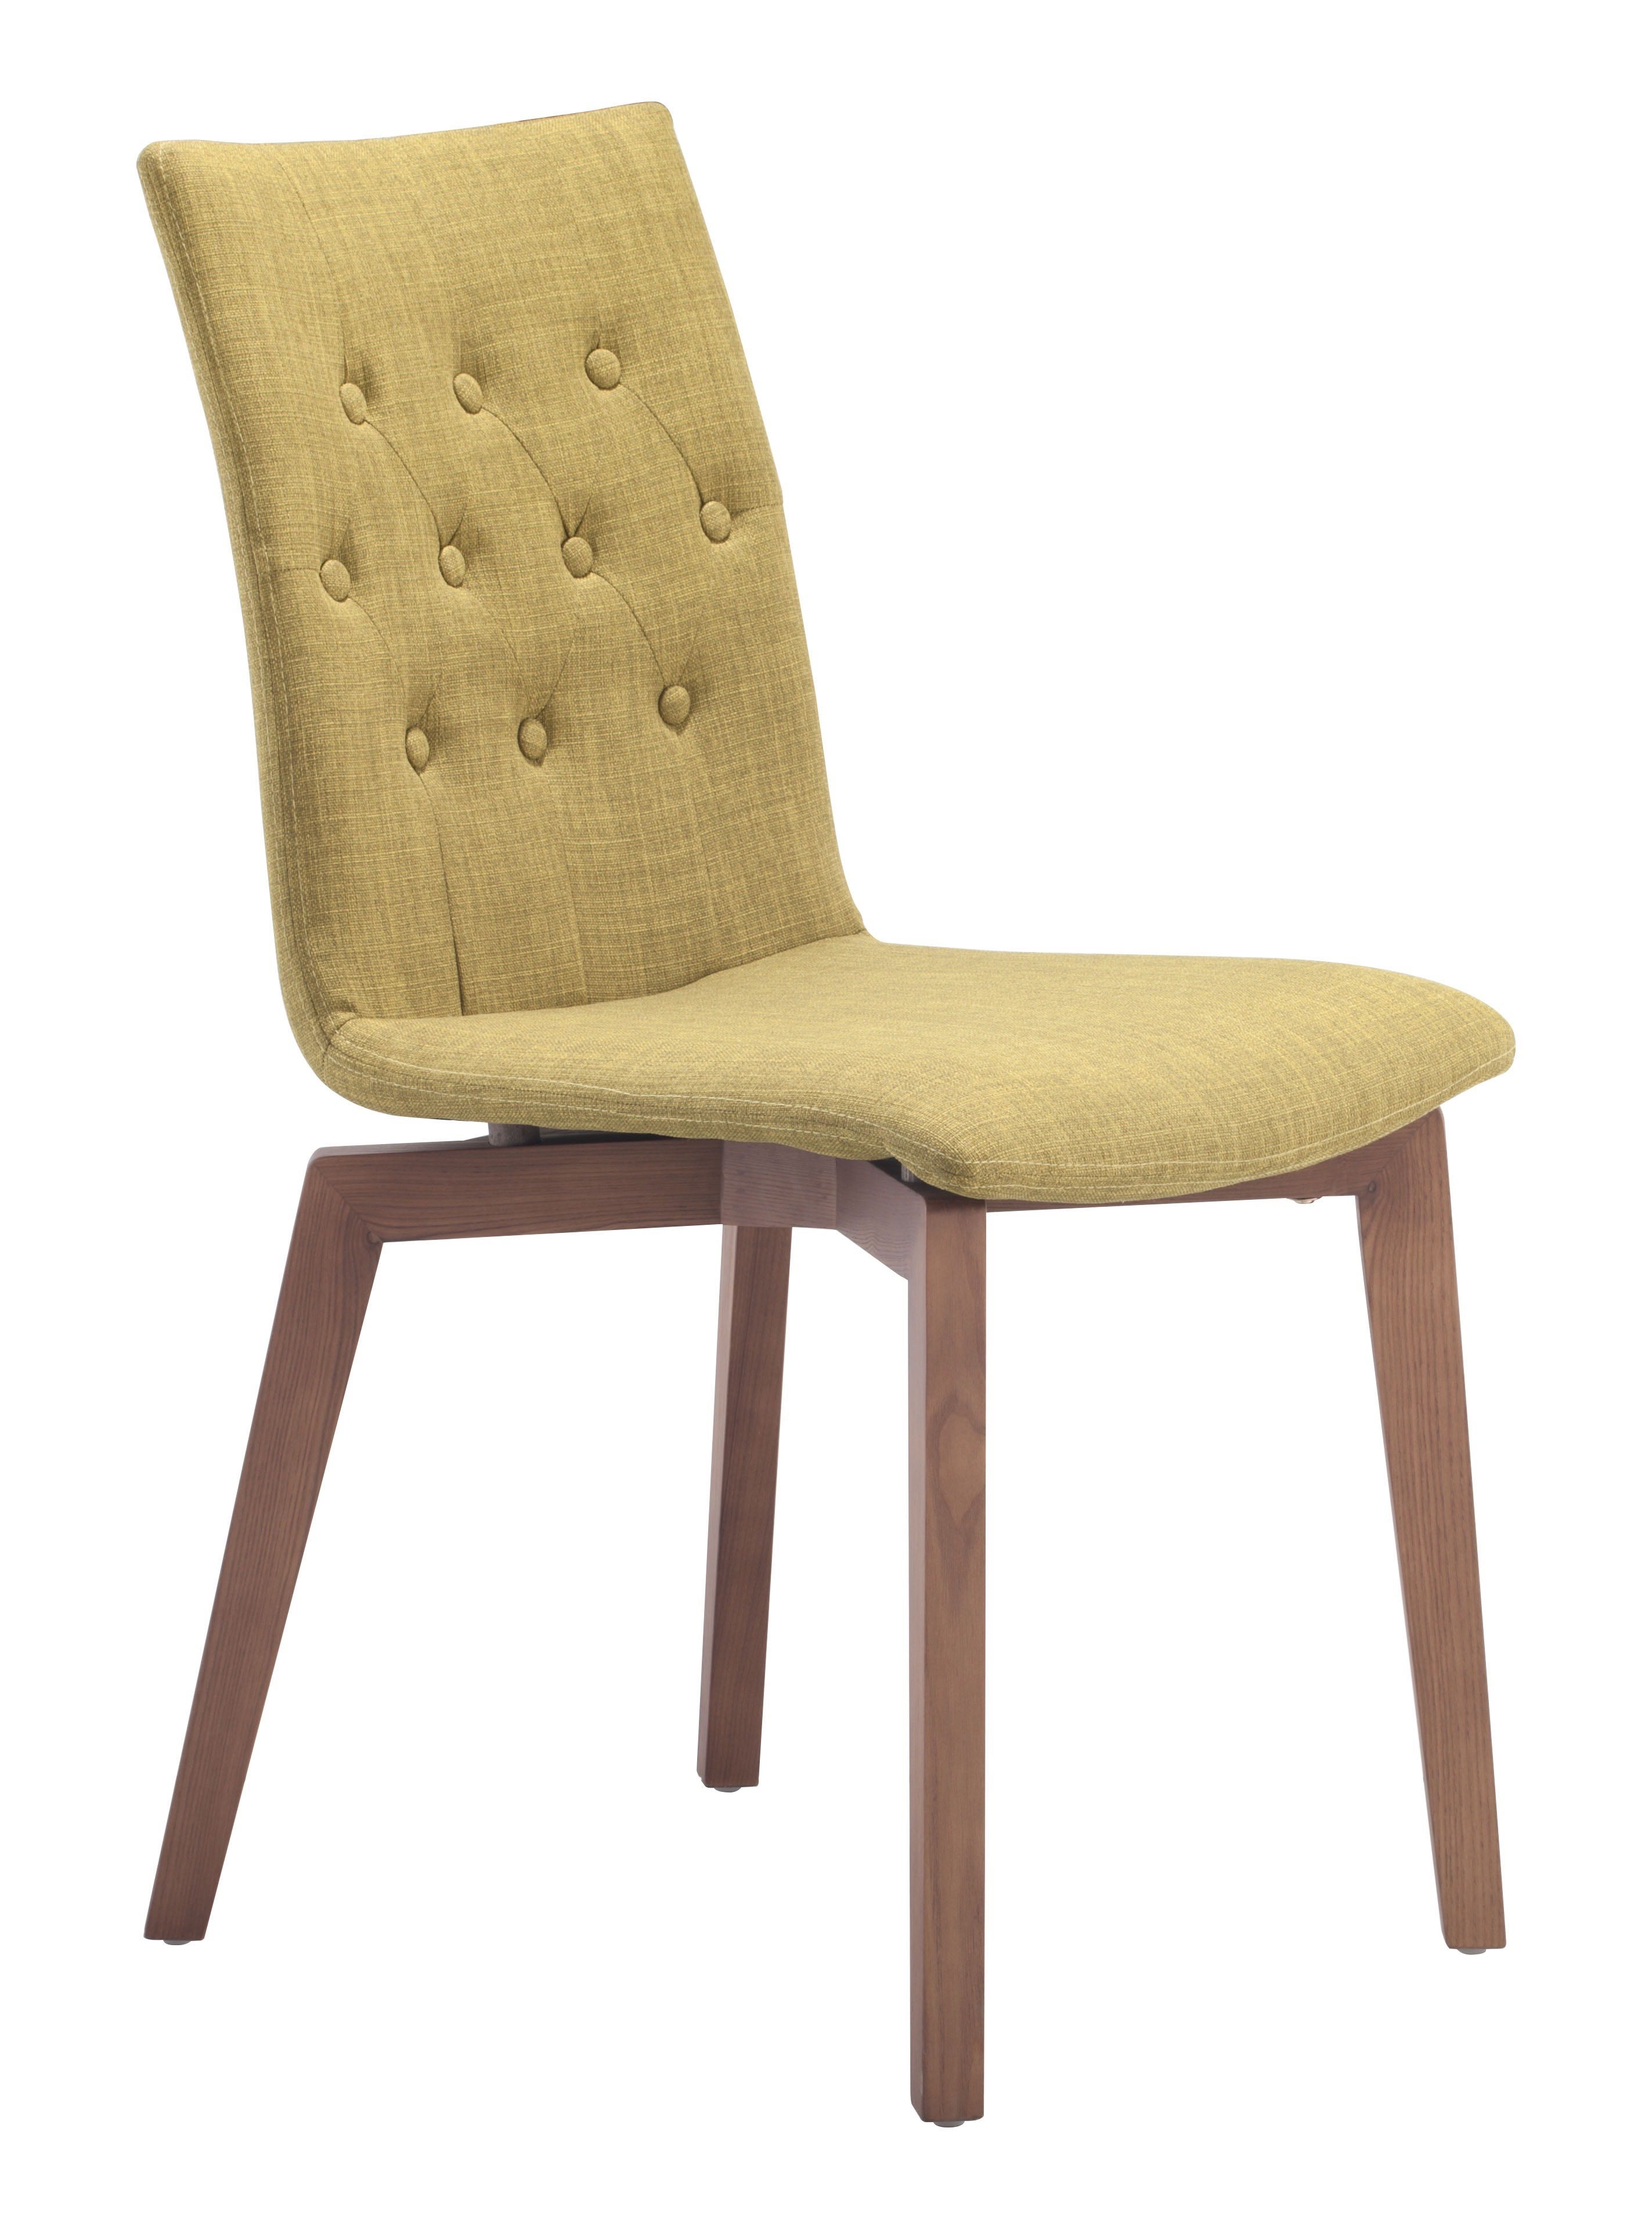 Zuo-Modern-Orebro-dining-chair